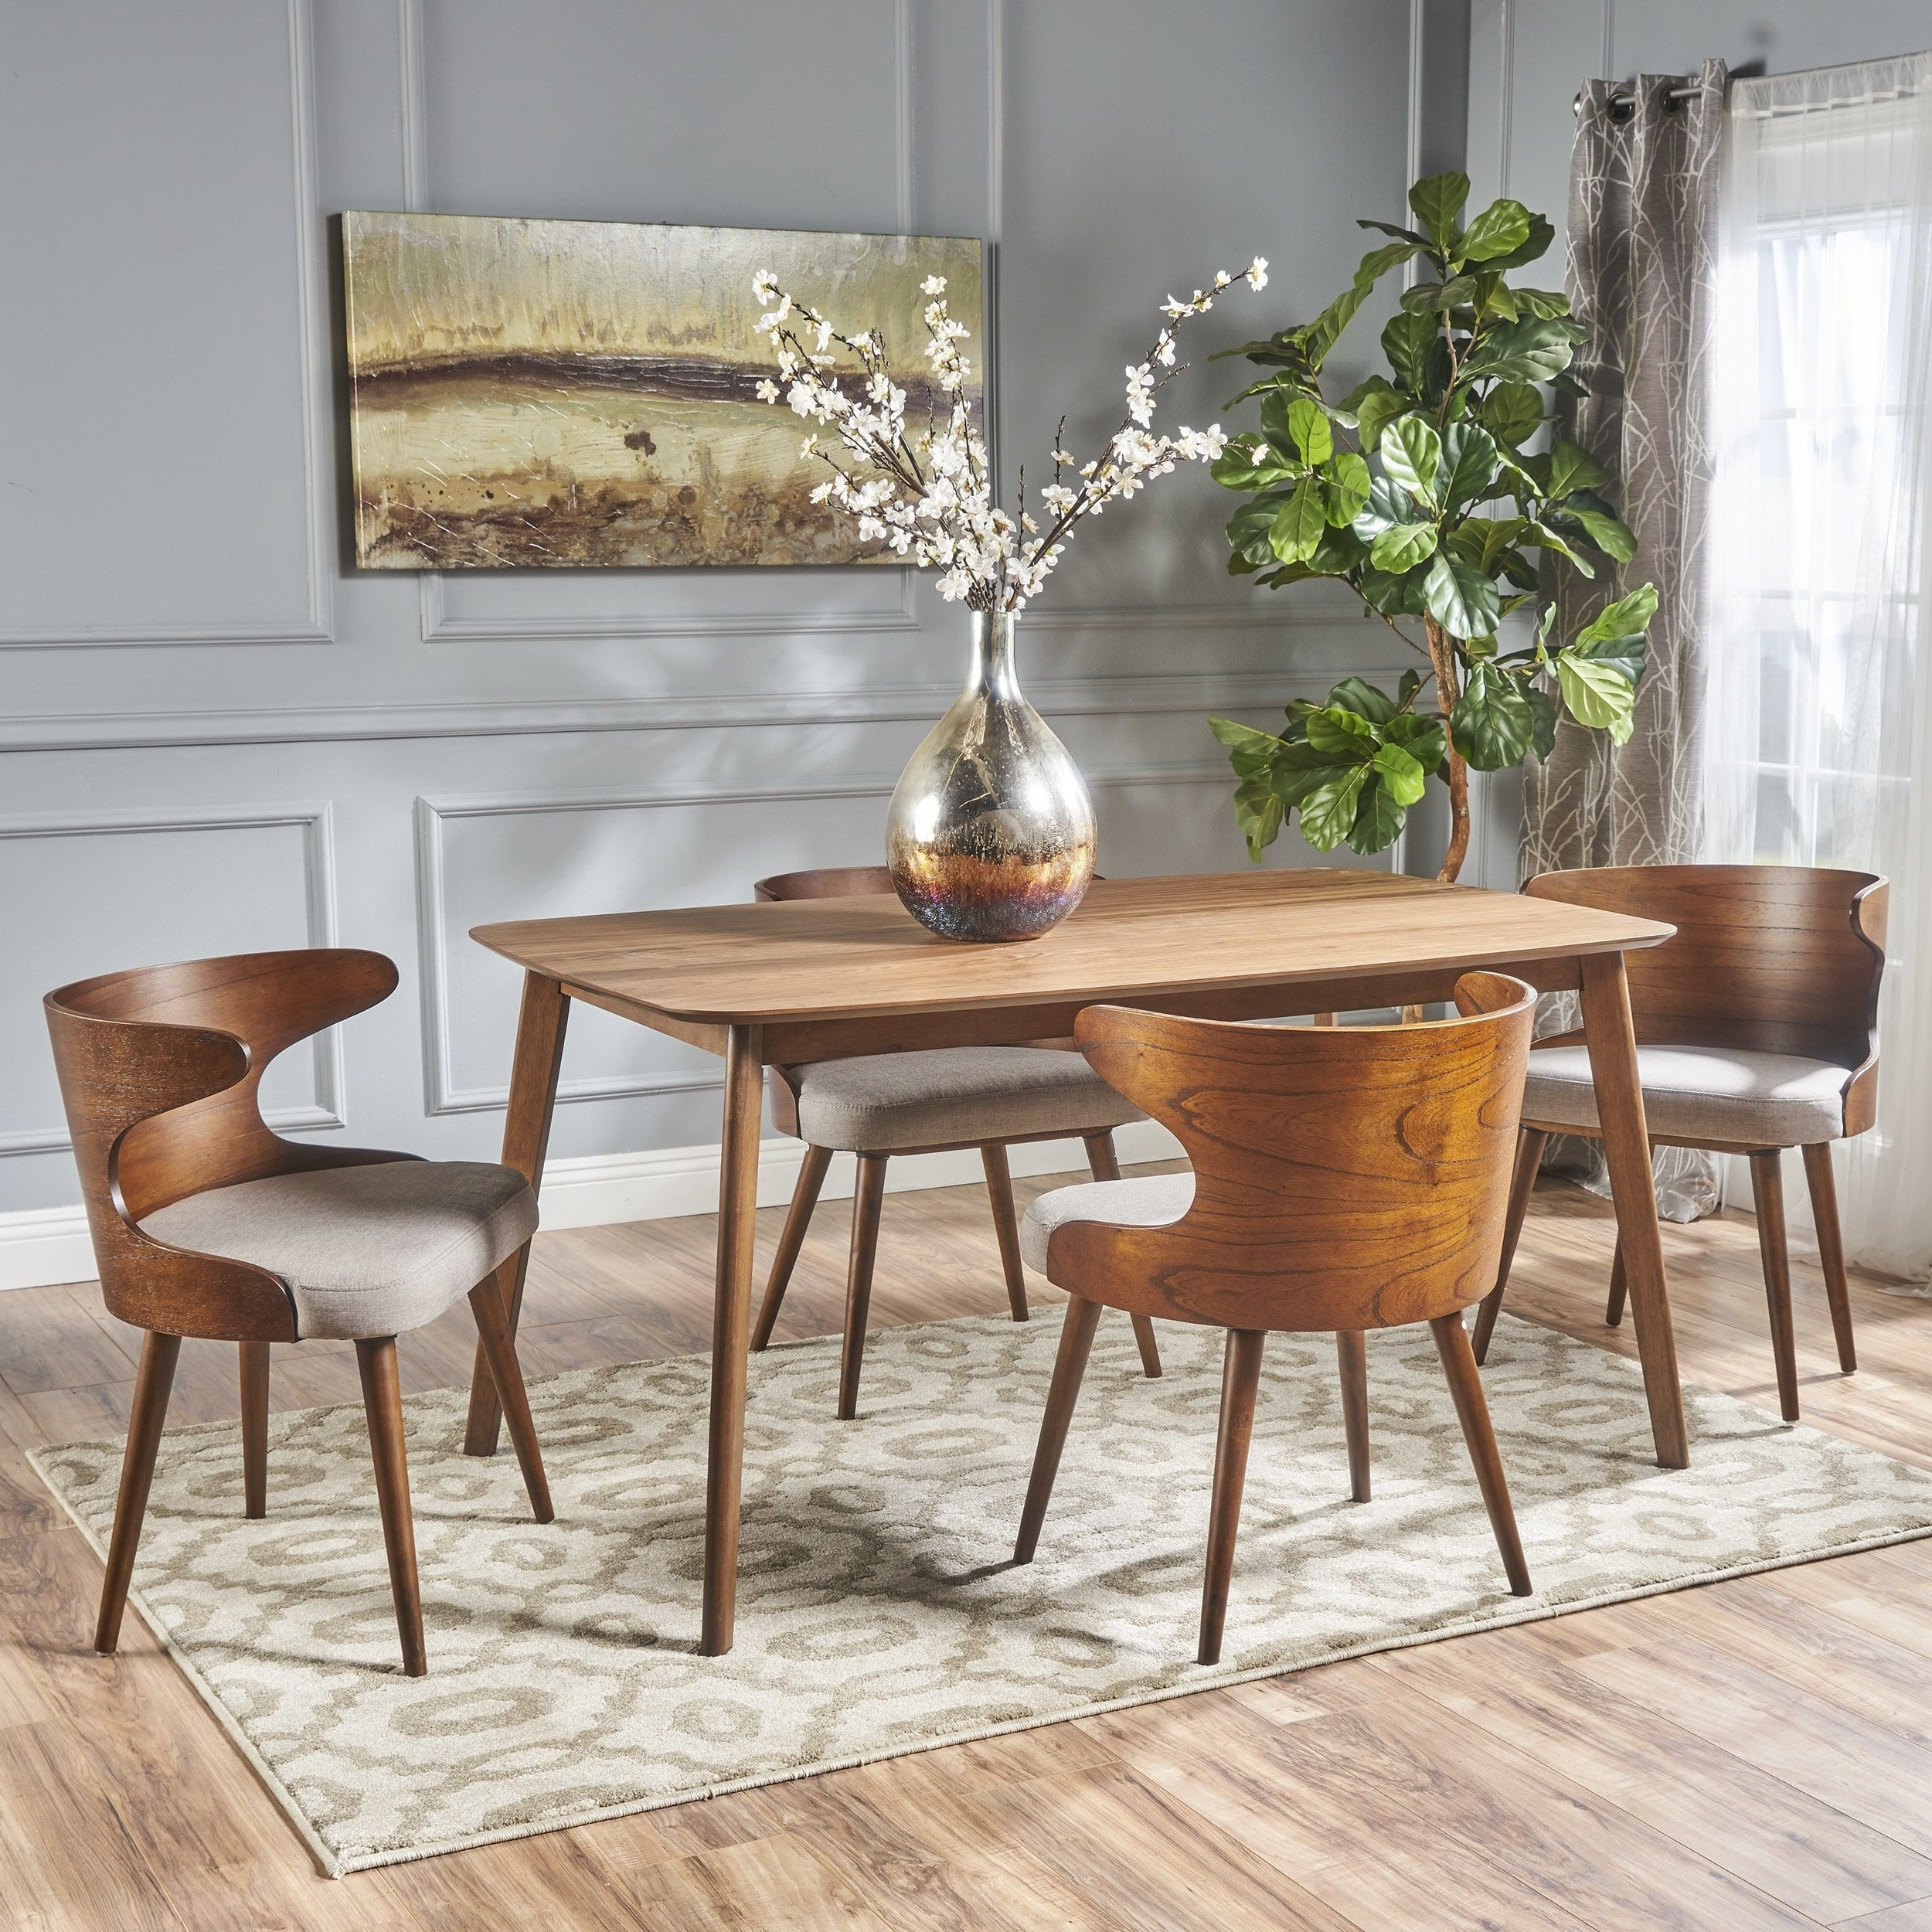 Famous Briella Mid Century 5 Piece Rectangular Wood Dining Set Regarding Palazzo 7 Piece Rectangle Dining Sets With Joss Side Chairs (View 10 of 25)